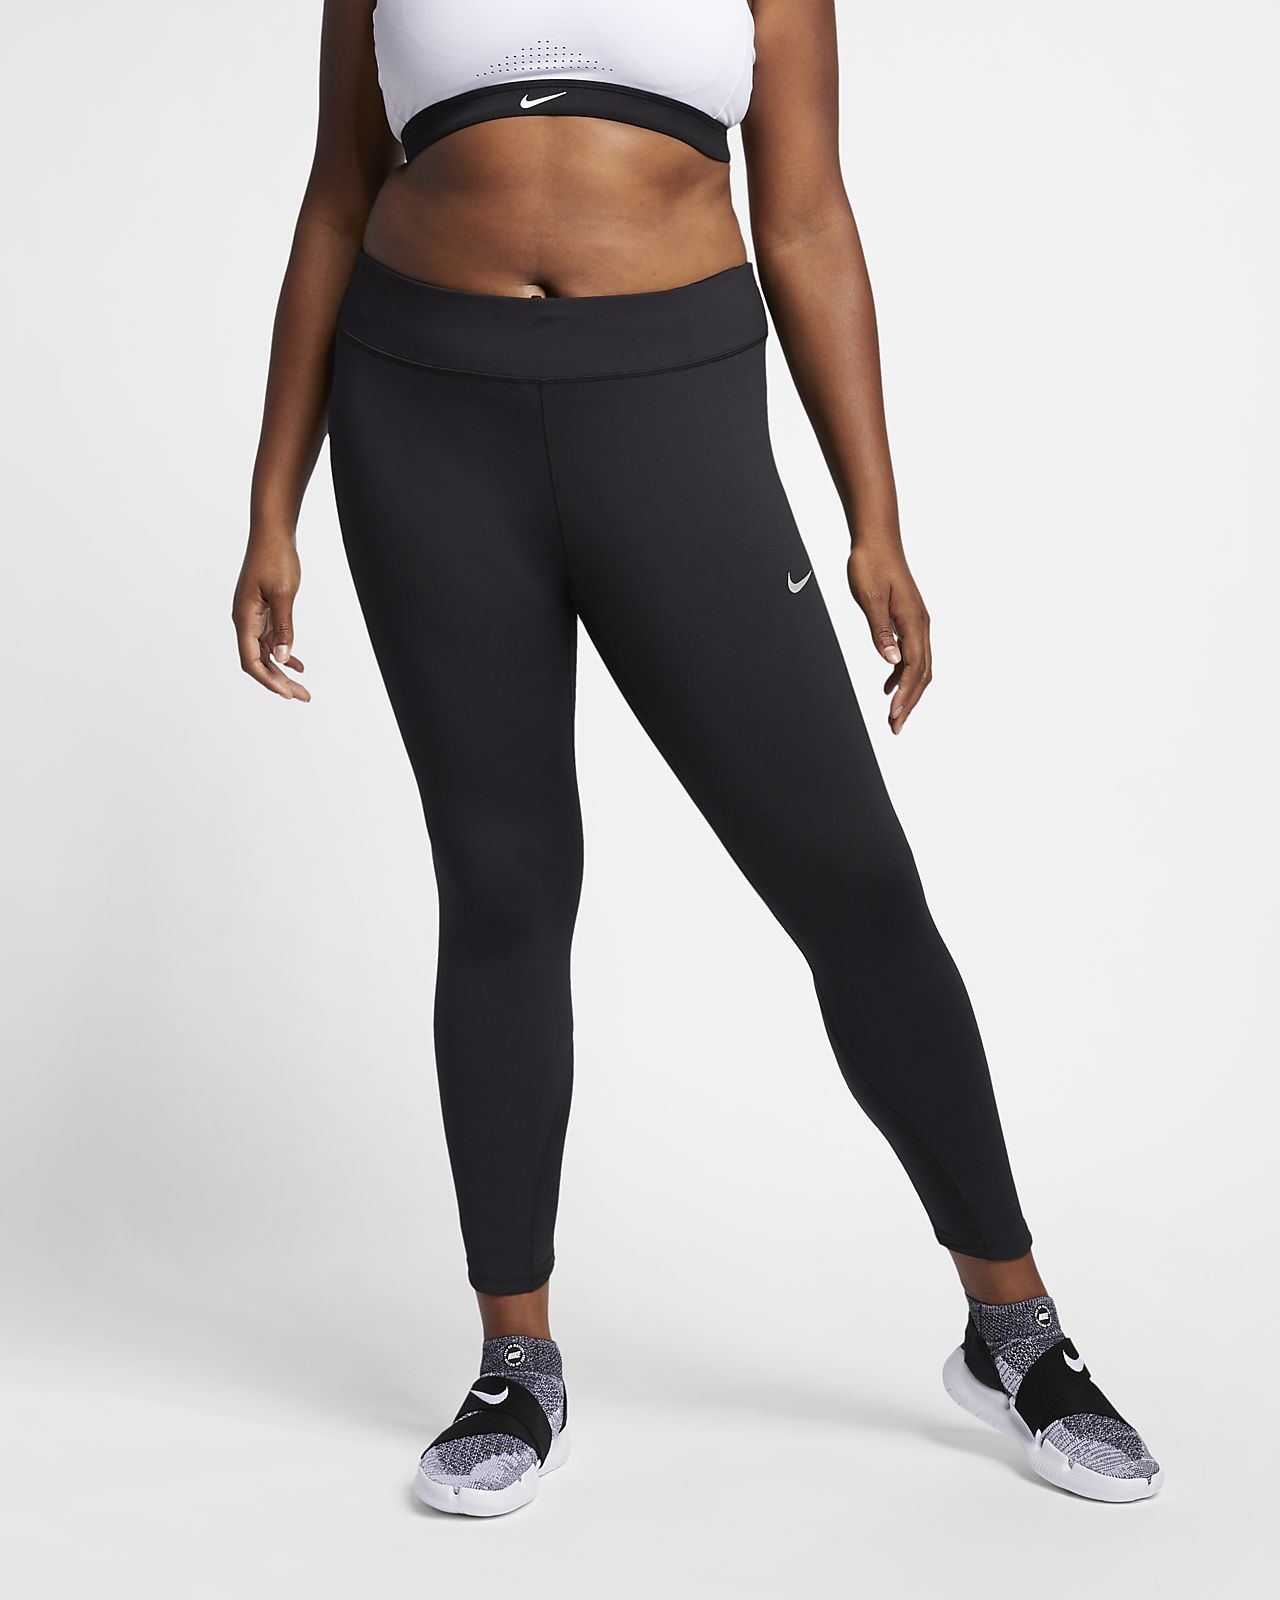 8830c502395 Nike Epic Lux Women s Mid-Rise Running Tights (Plus Size) . Nike.com